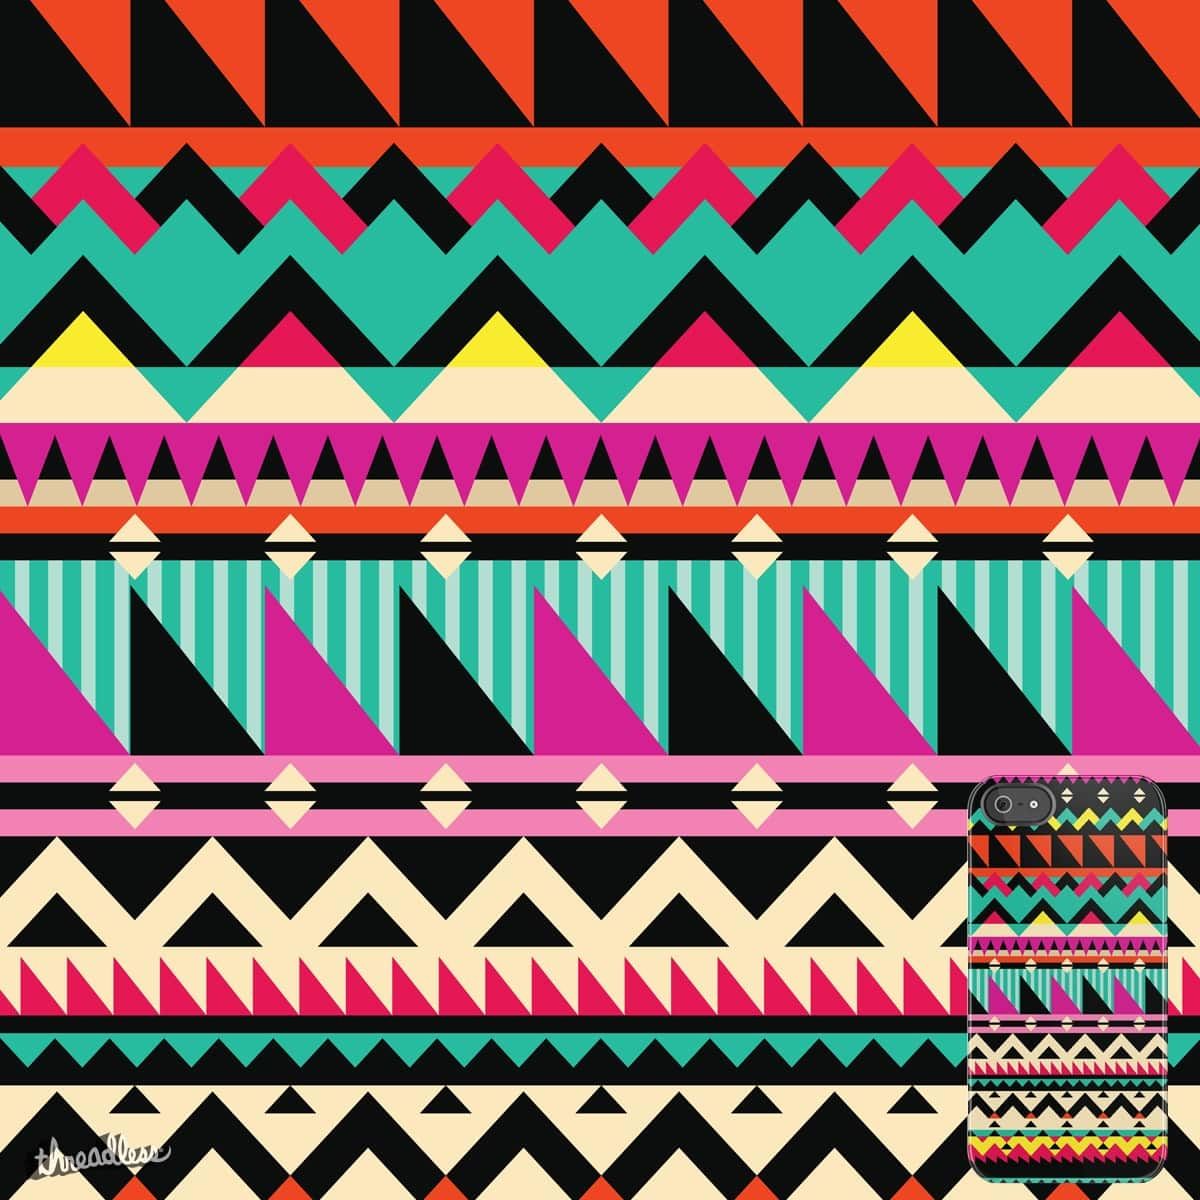 Tribal patterns and designs